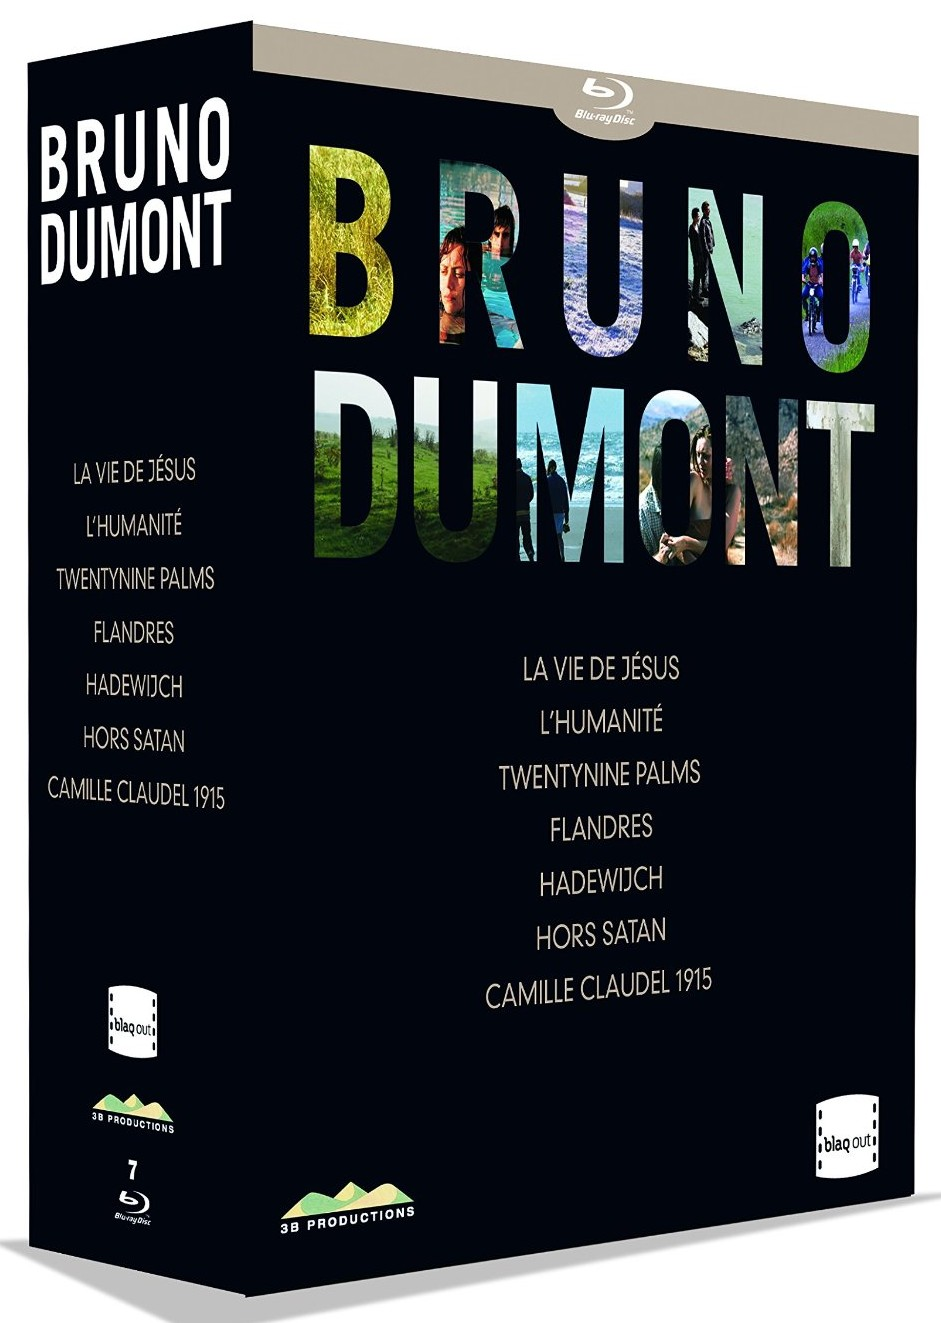 coffret-bruno-dumont-integrale-blaq-out